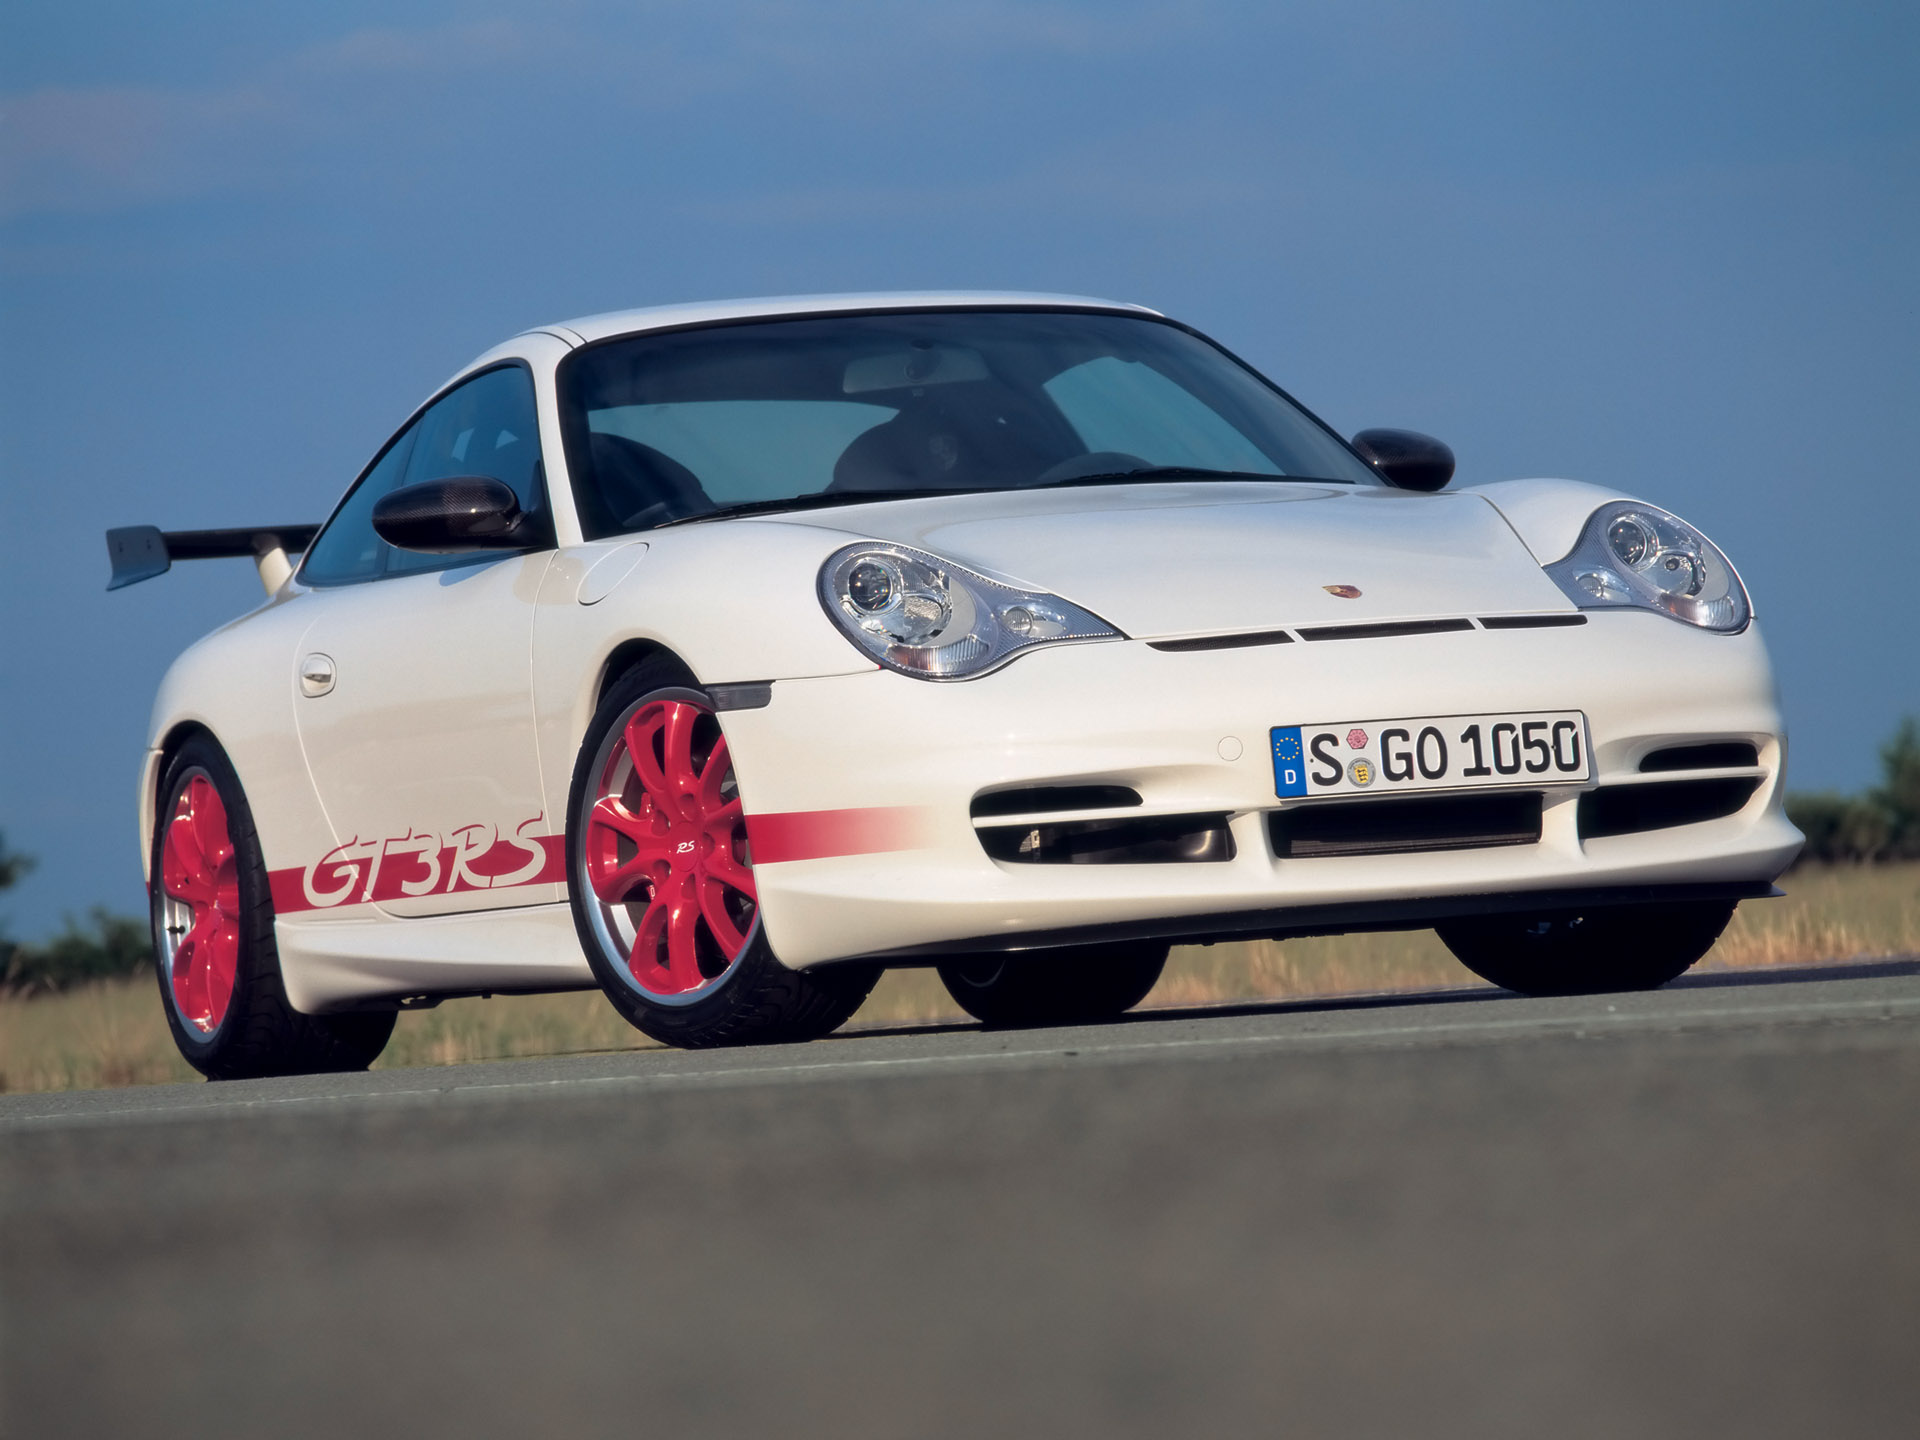 2004 Porsche 911 GT3 RS. More pictures and press release are below.